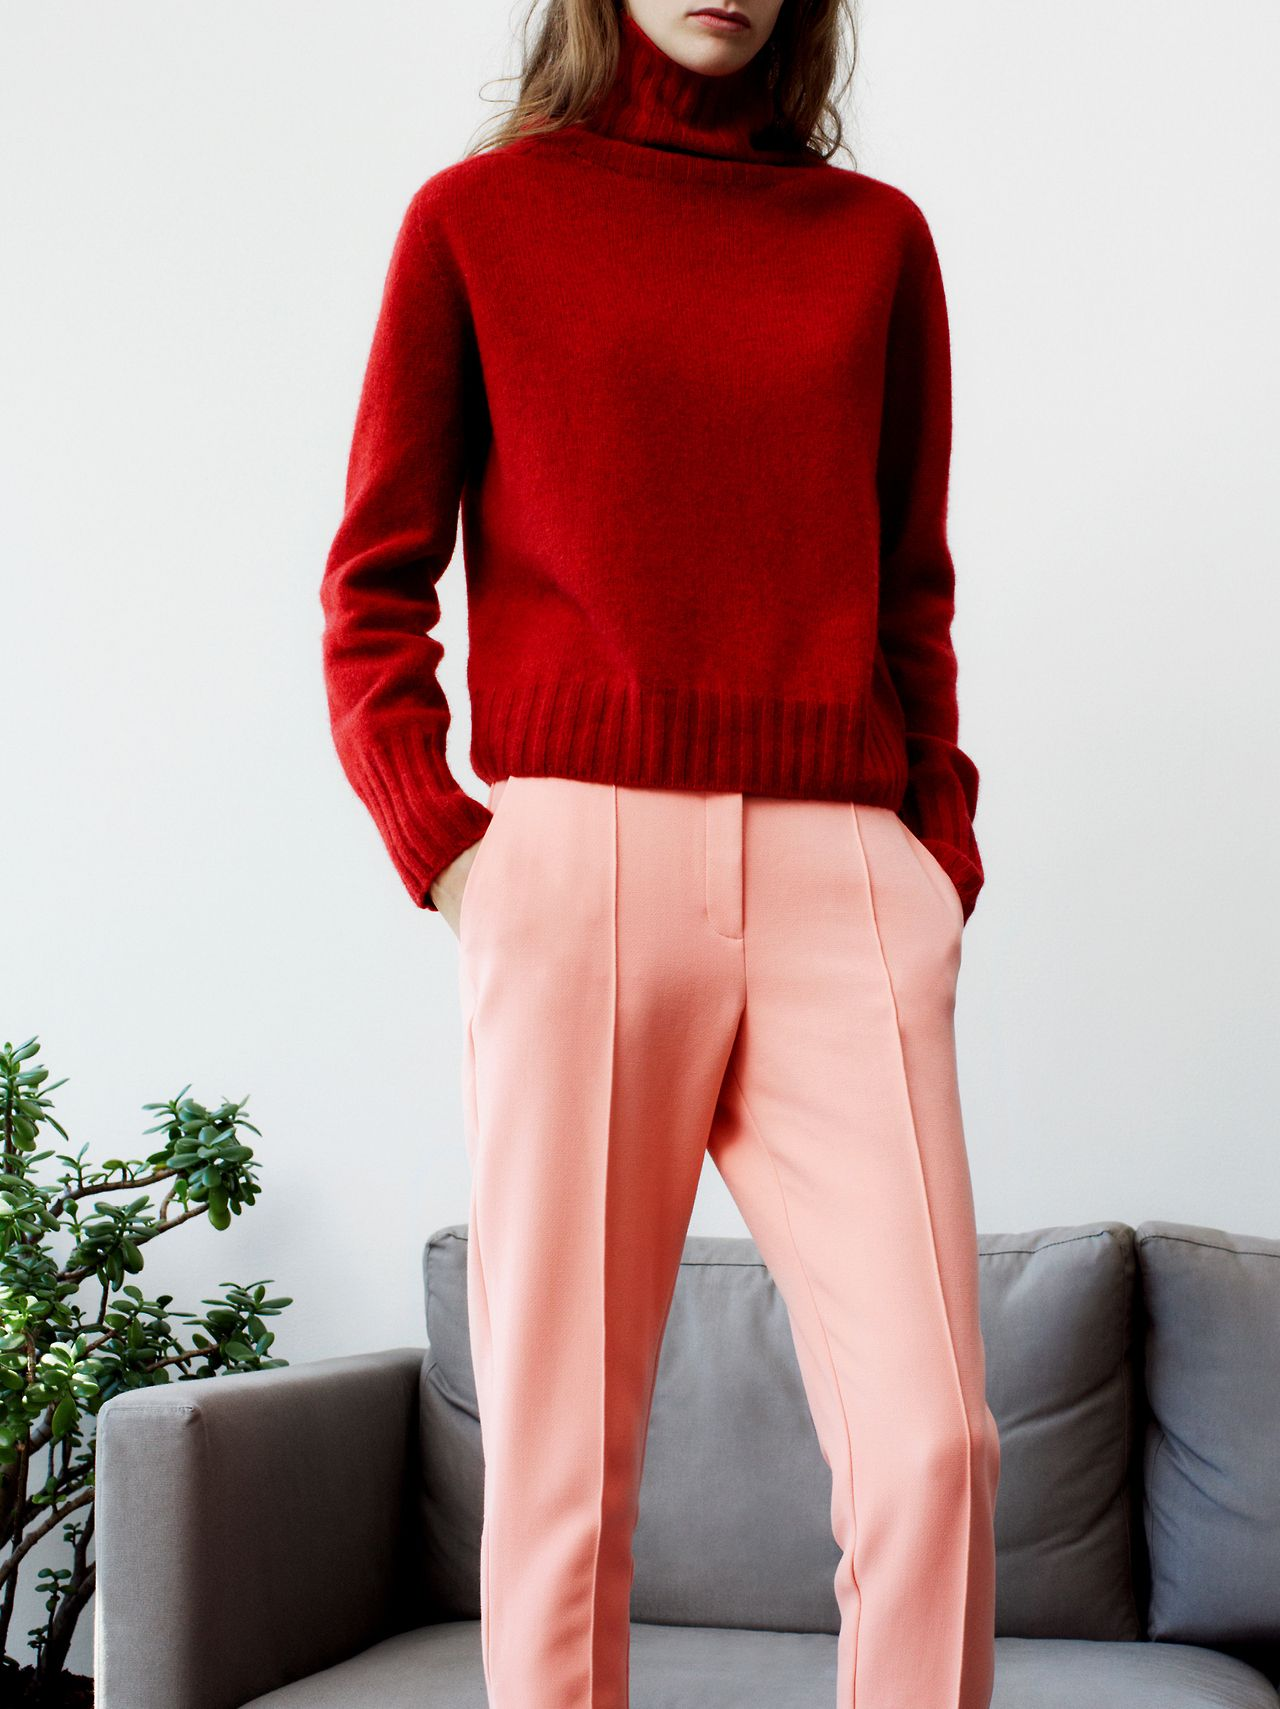 Red and pink outfit #vantinesday | TRENDS I LOVE | Pinterest ...